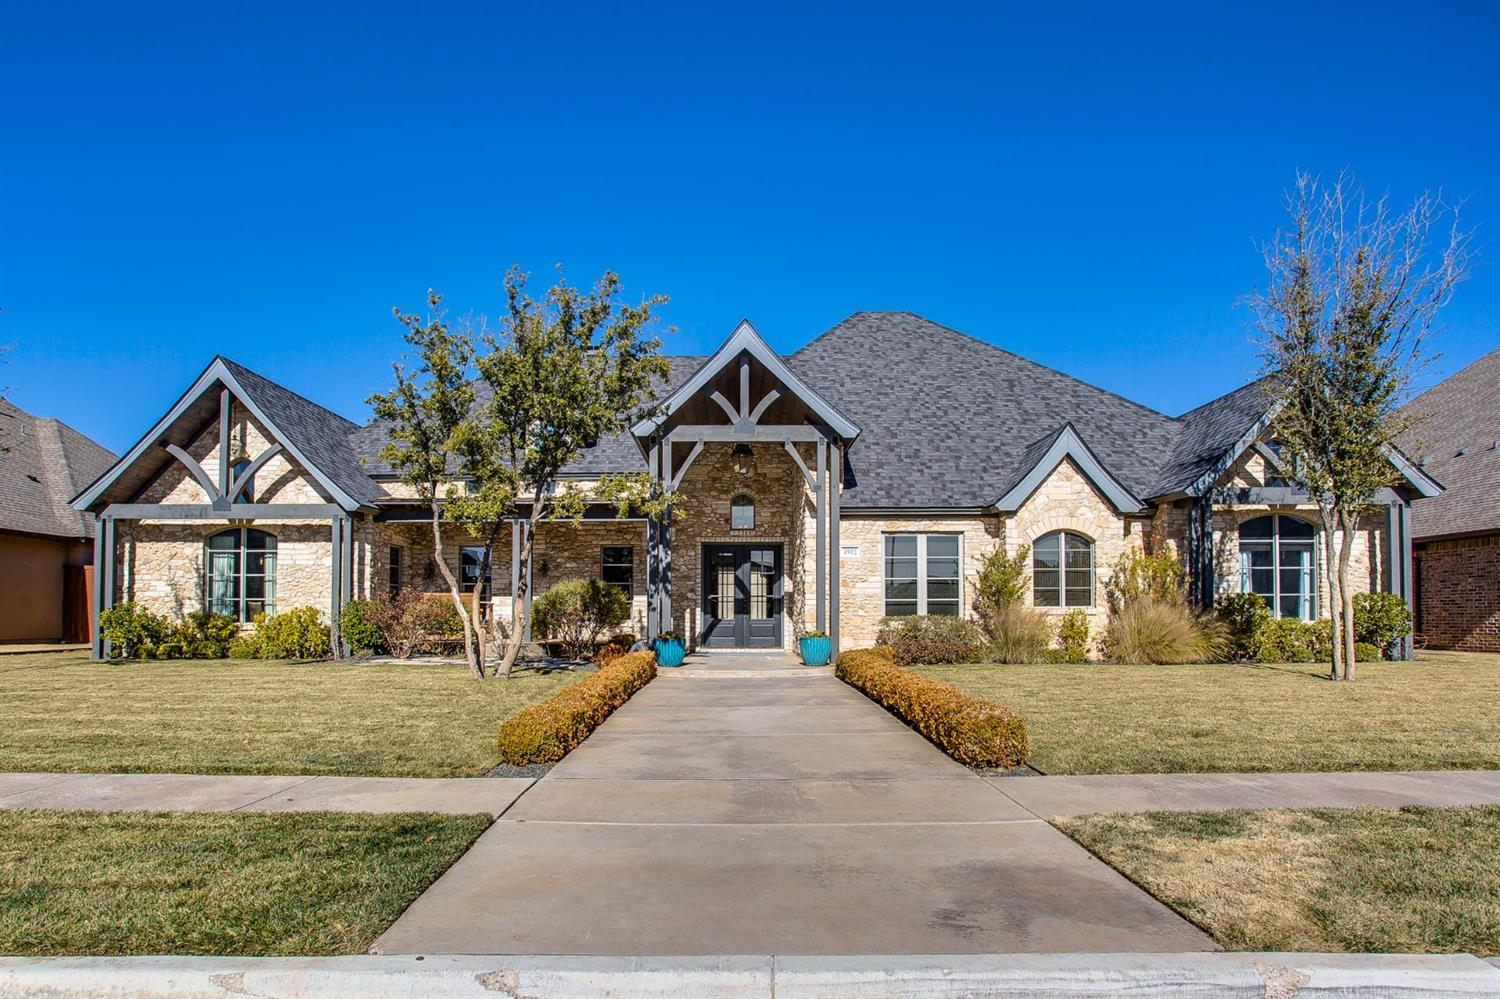 Phenomenal four bedroom home located in Oakmont Estates!  This home was custom built by Clearview Custom Homes and was featured in the Parade of Homes.  The opulent living room has soaring ceilings, gas logs fireplace and a wet bar. The kitchen features top of the line appliances including a built-in commercial sized fridge/freezer, 6 burner gas stove, and a large island. The gorgeous isolated master suite has a cathedral ceiling with a built-in TV, air flow tub, his and her vanities, separate walk-in shower and sauna, and a massive closet with a designated dressing area finish off the master suite.  There is a small play area directly outside two of the additional bedrooms that is easily closed off with a sliding door.  Walk down the oversized stairway to a large basement or venture to the back patio where you will find an amazing covered area and with an outdoor fireplace/Kitchen. There is a trophy/game room in the back that is a great place to entertain! Welcome to your dream home!